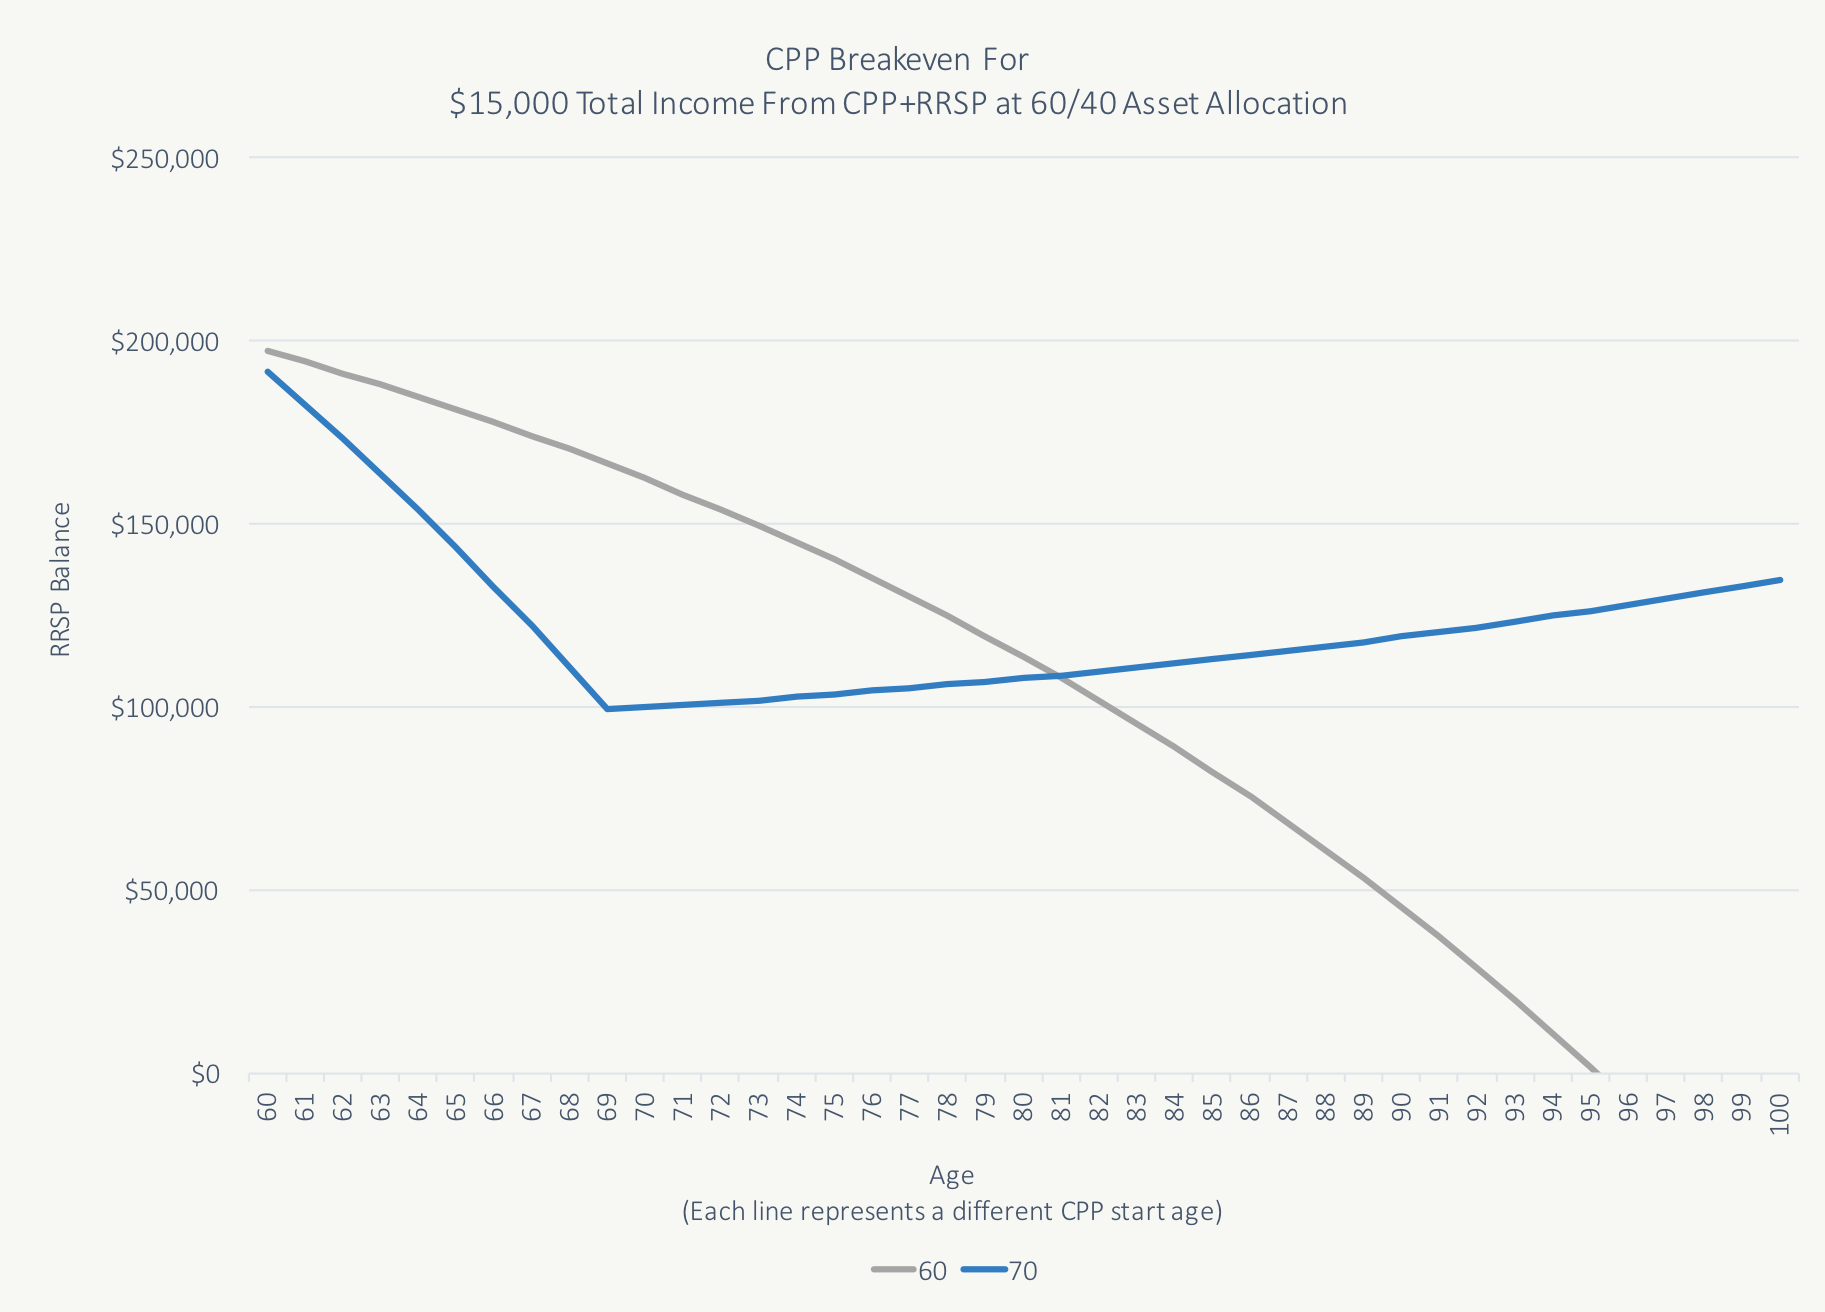 how a lot is cpp for each period of time next to time of life 60